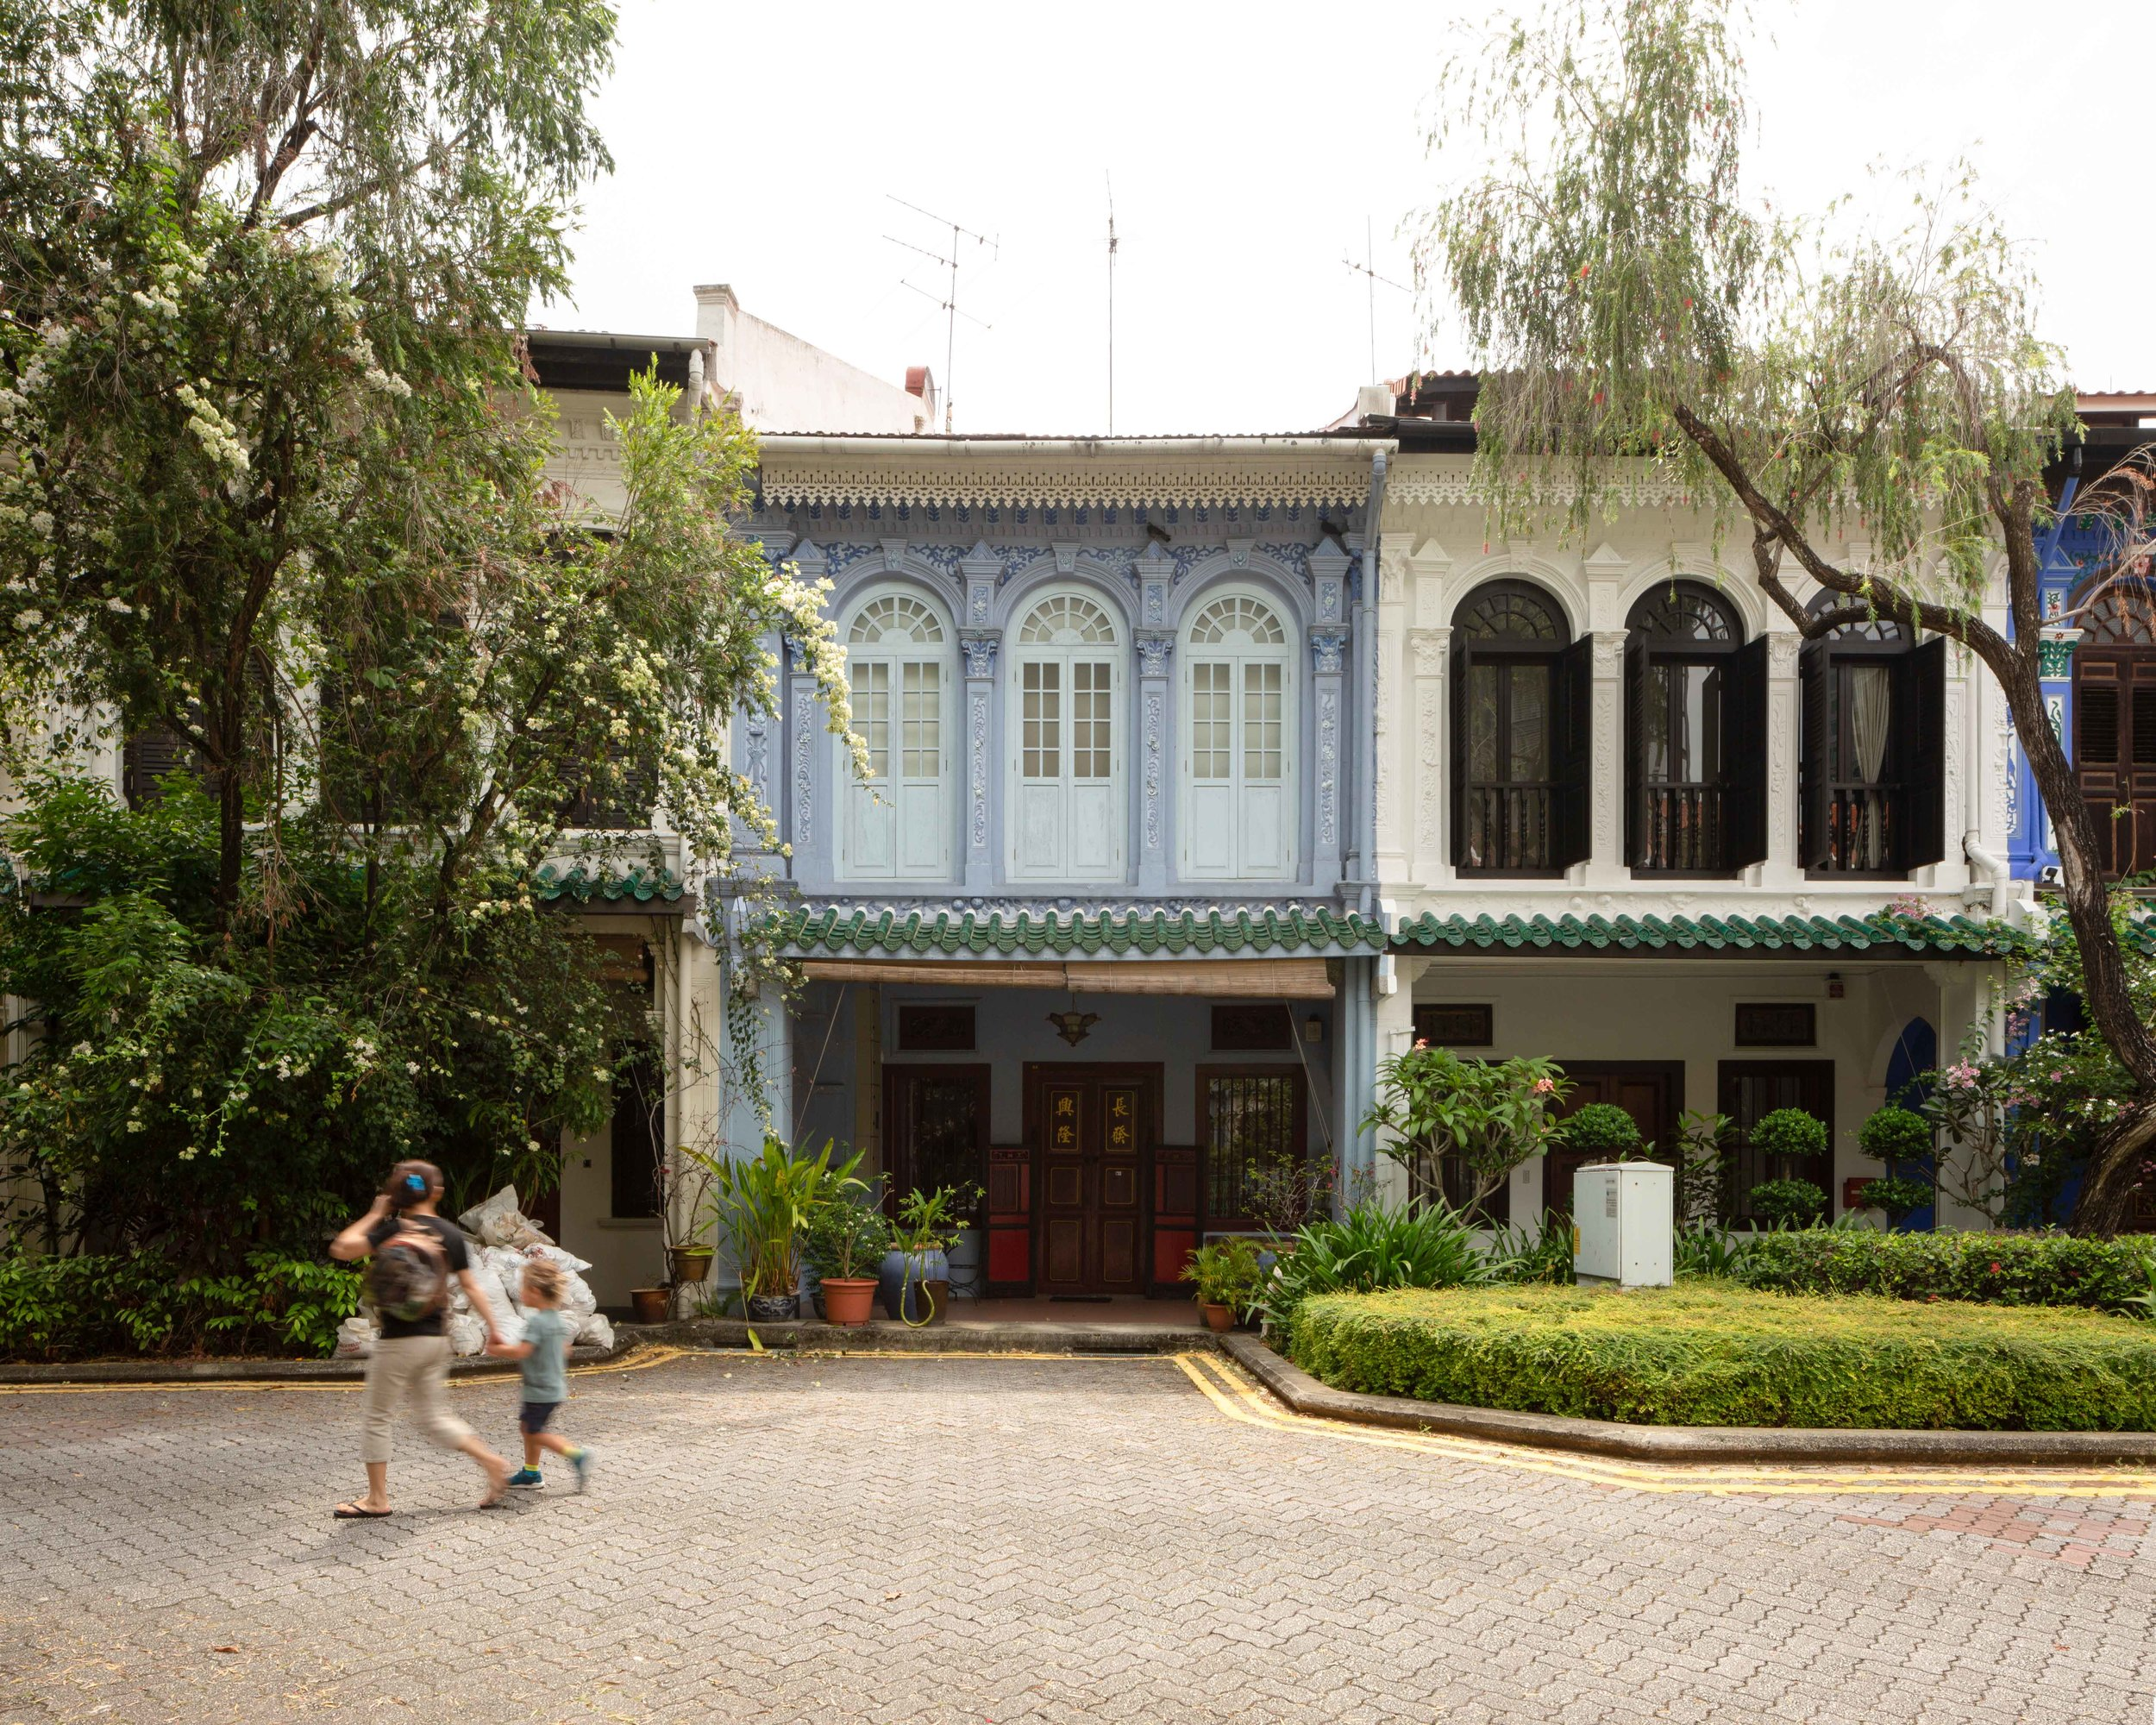 94 Emerald Hill Road, designed by W.T. Moh and developed by Chew Keng Cheng & Others in 1903